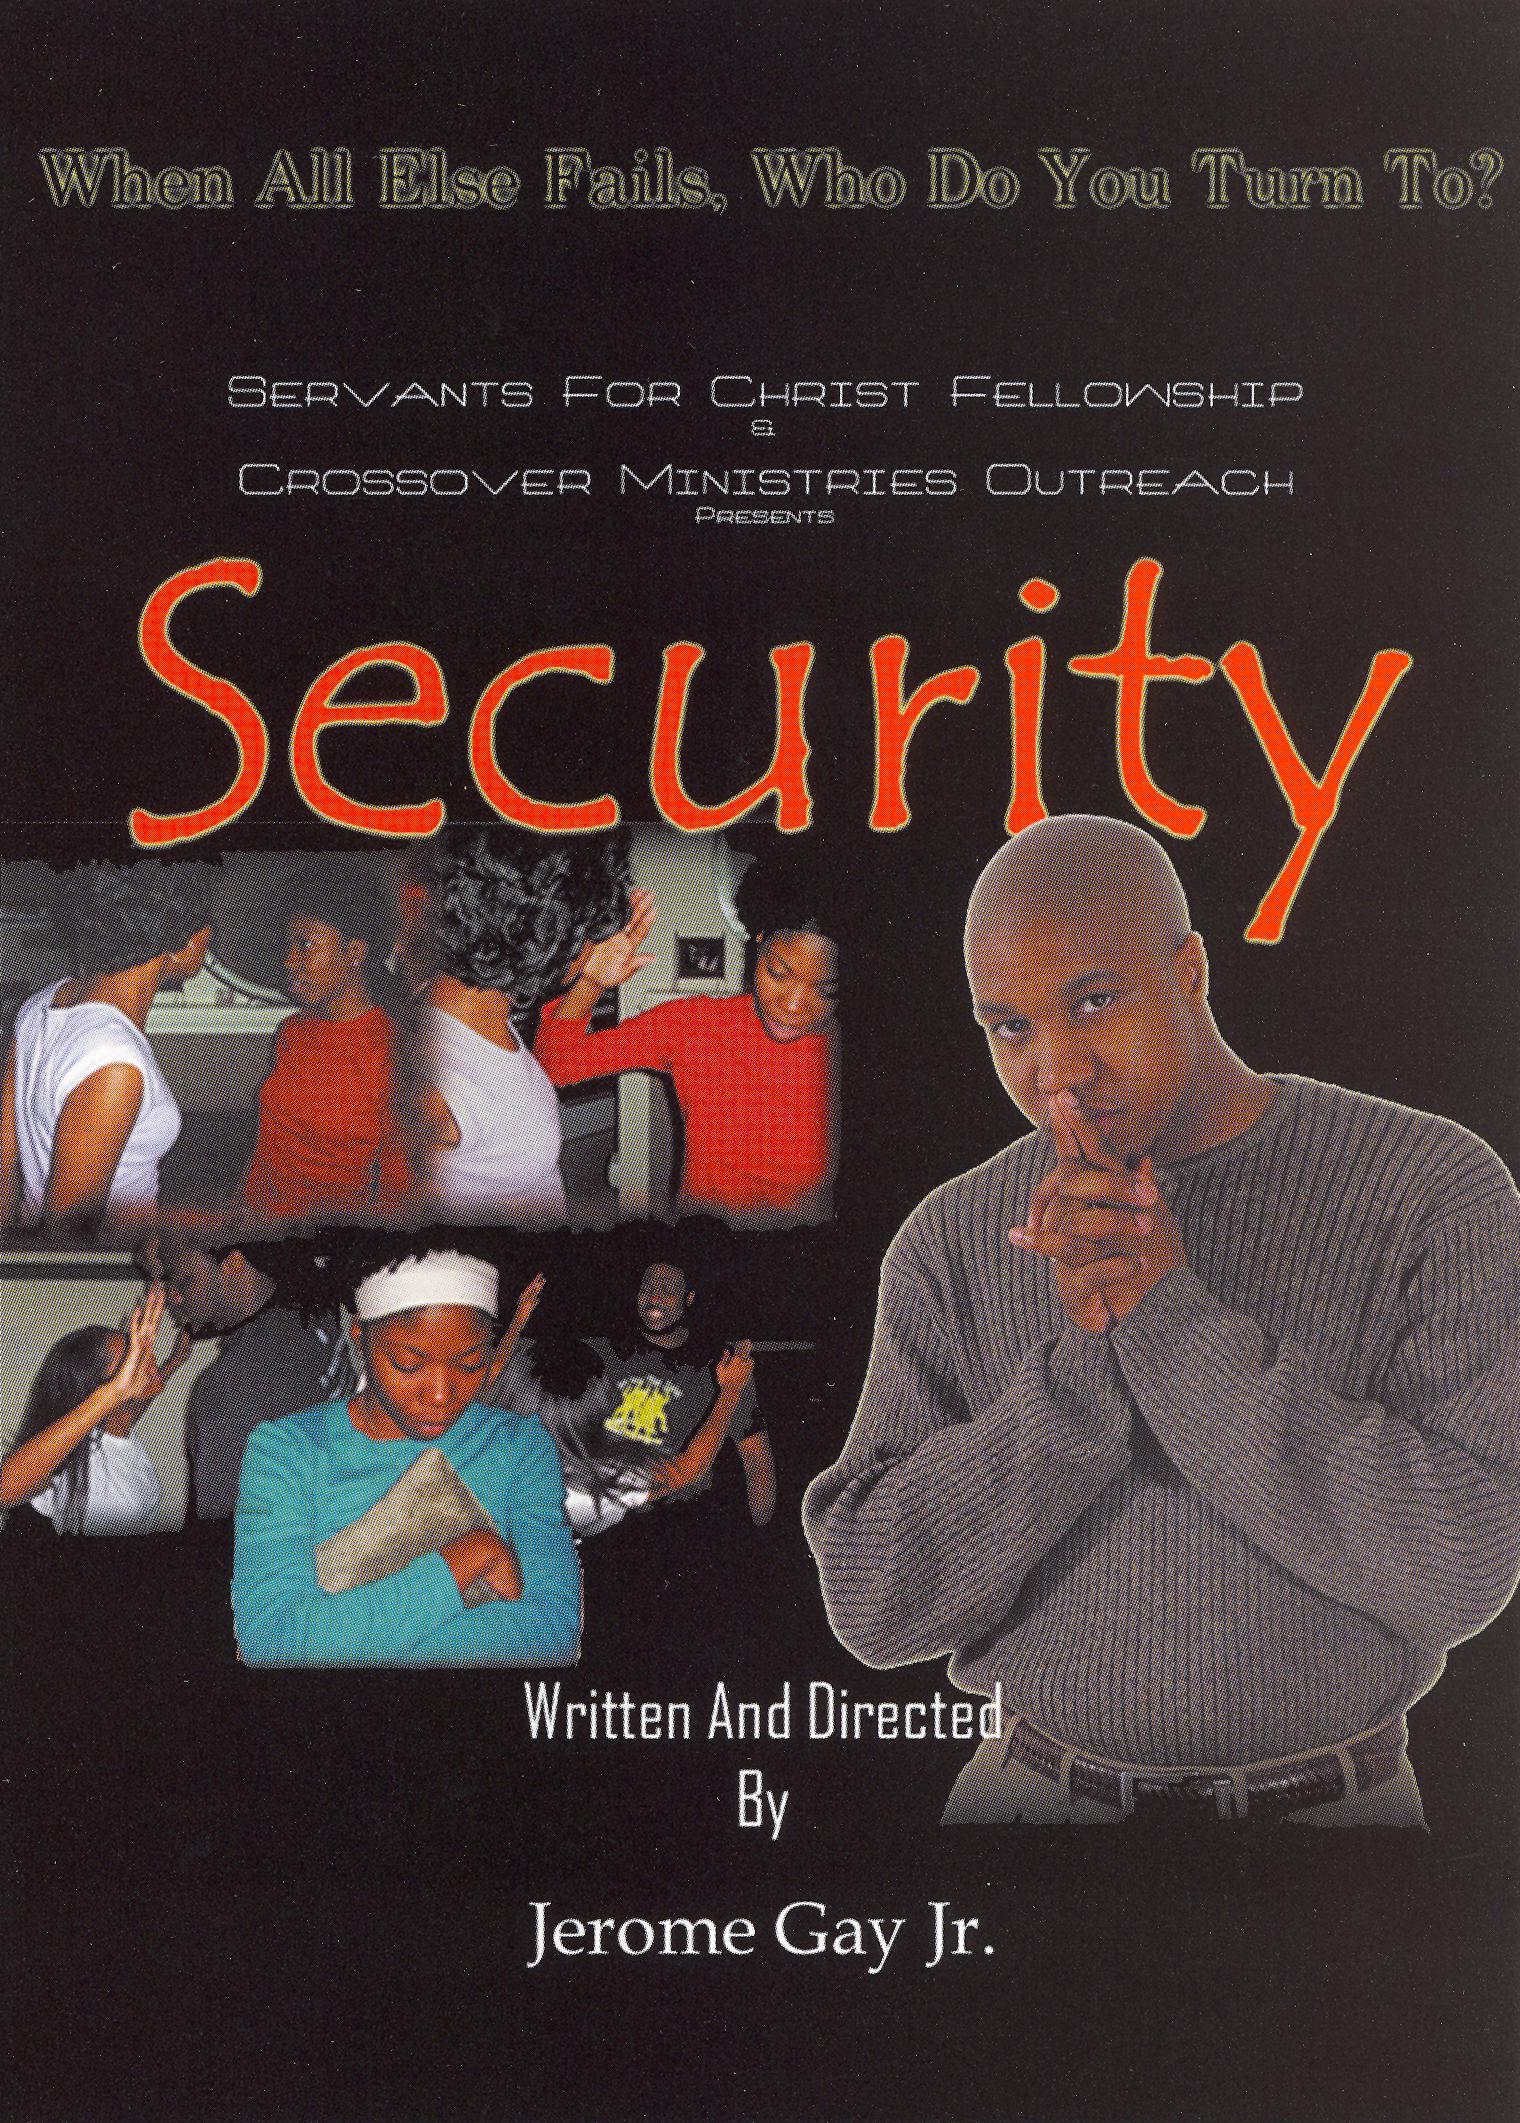 Security: When All Else Fails, Who Do You Turn To